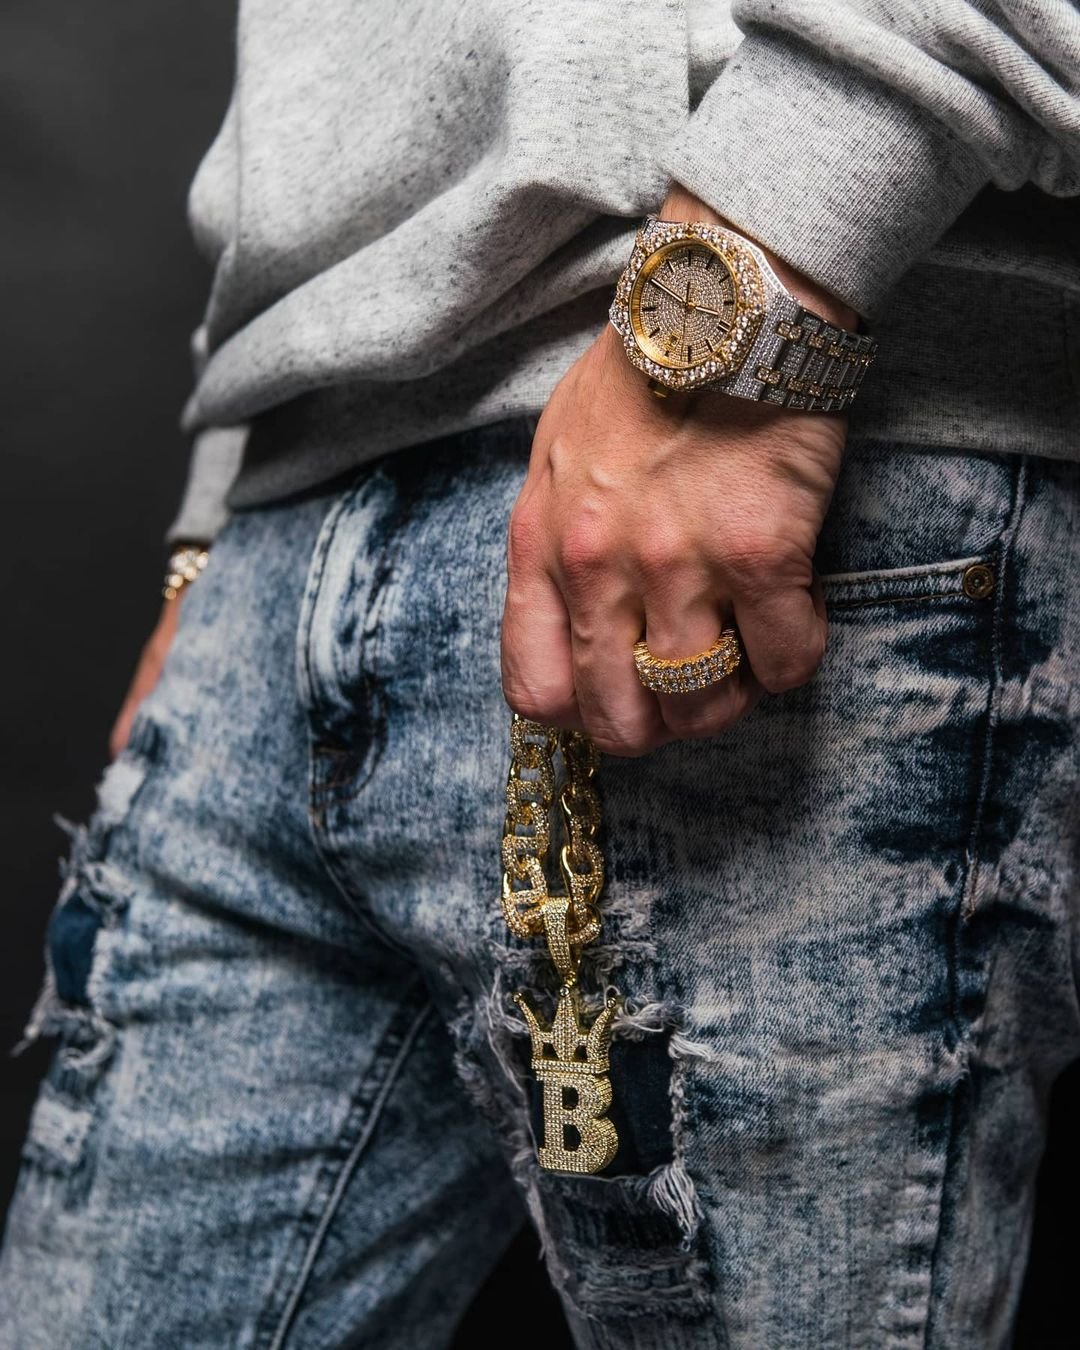 Real recognizes real, you feel? Discover the best hip hop jewelry at HipHopBling.com